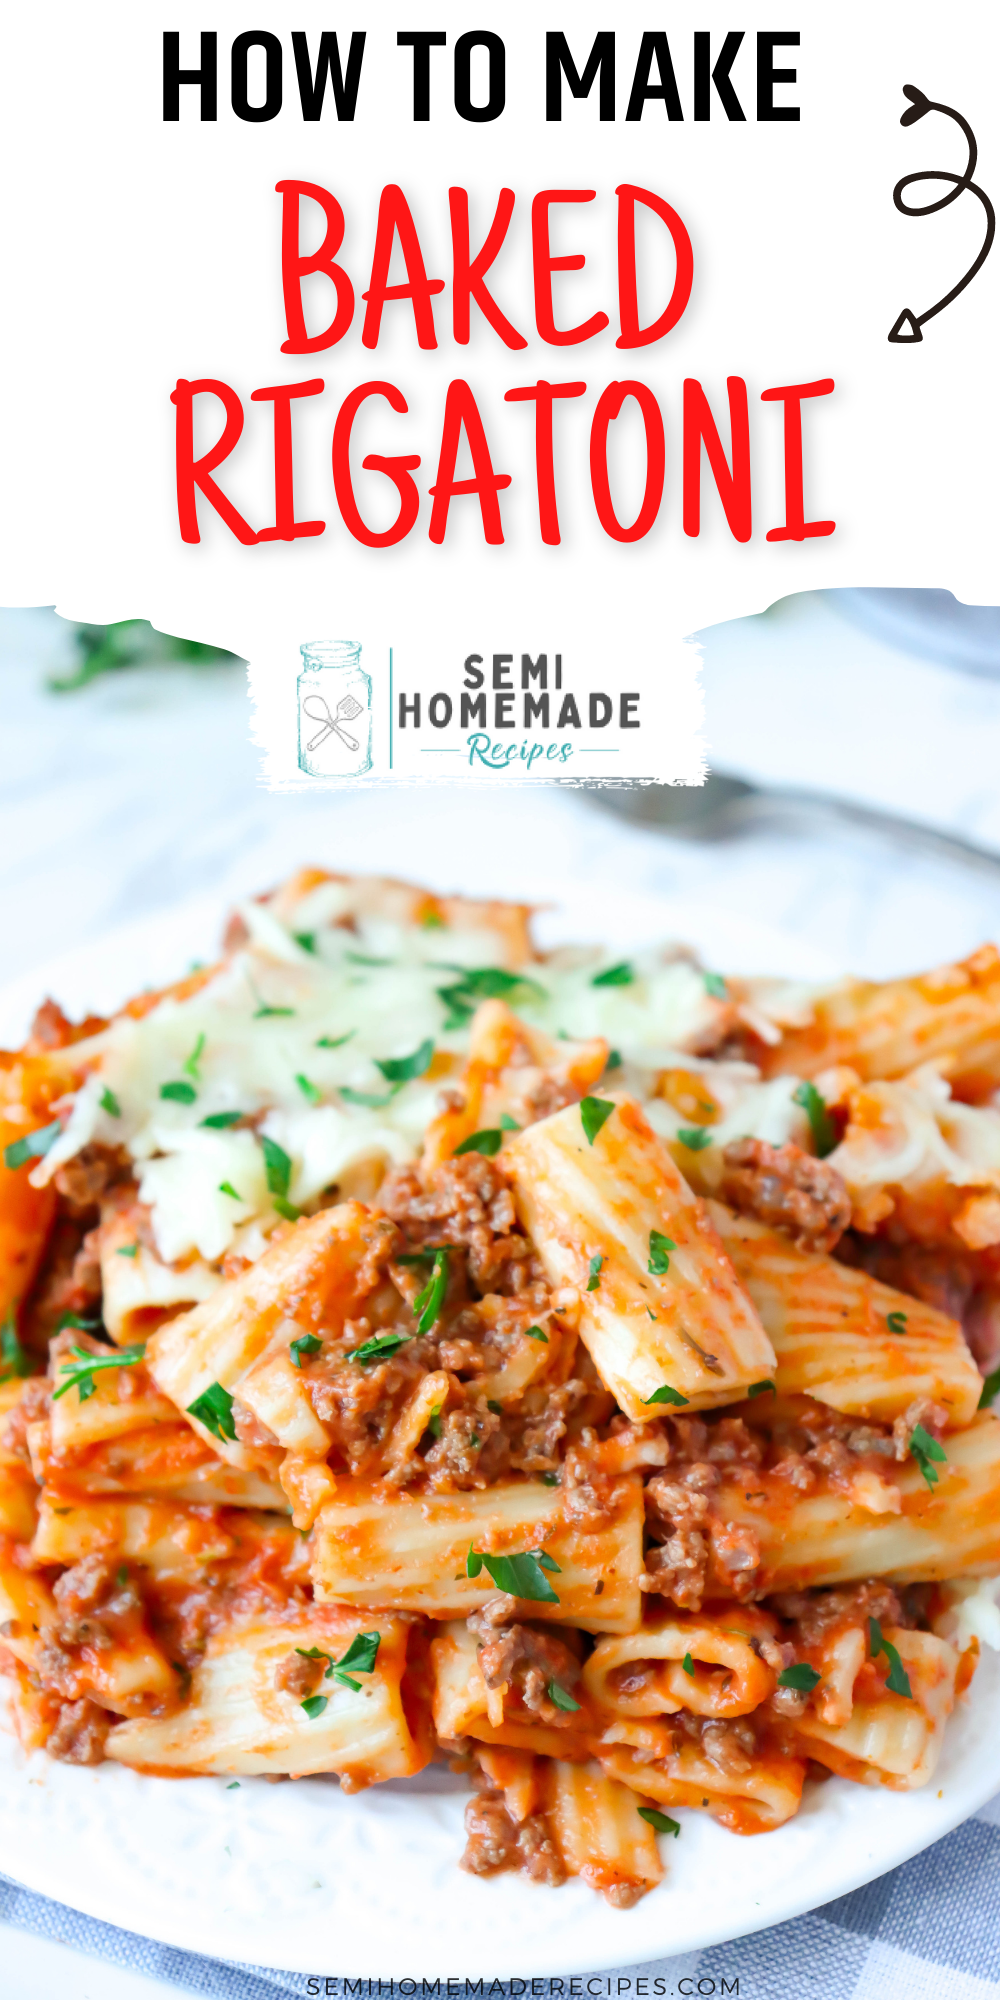 Baked Rigatoni is a rigatoni baked pasta casserole that is mixed with a wonderful meat sauce and topped with shredded mozzarella cheese.